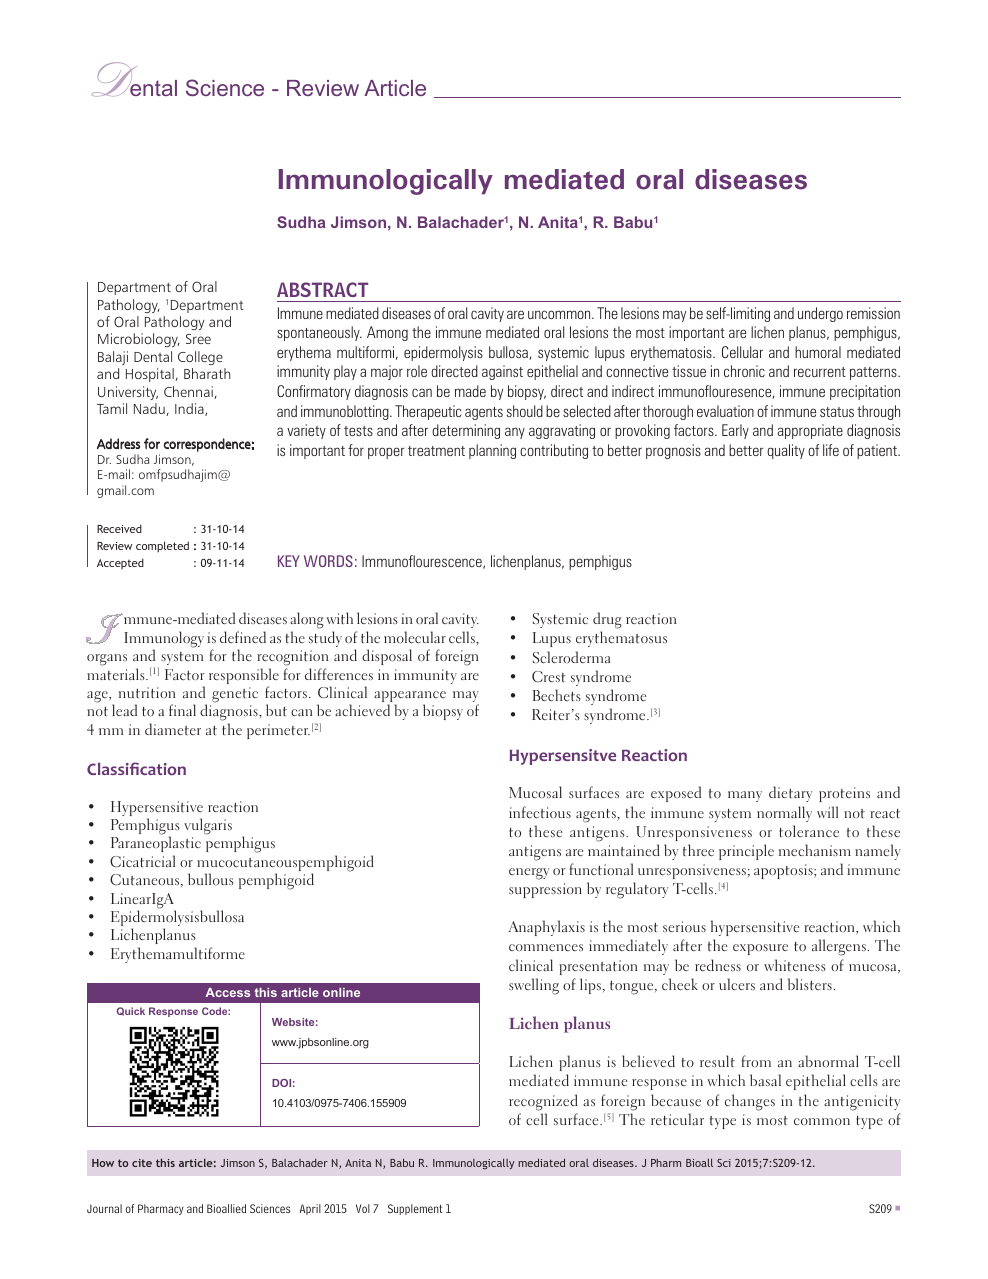 Immunologically mediated oral diseases – topic of research paper in